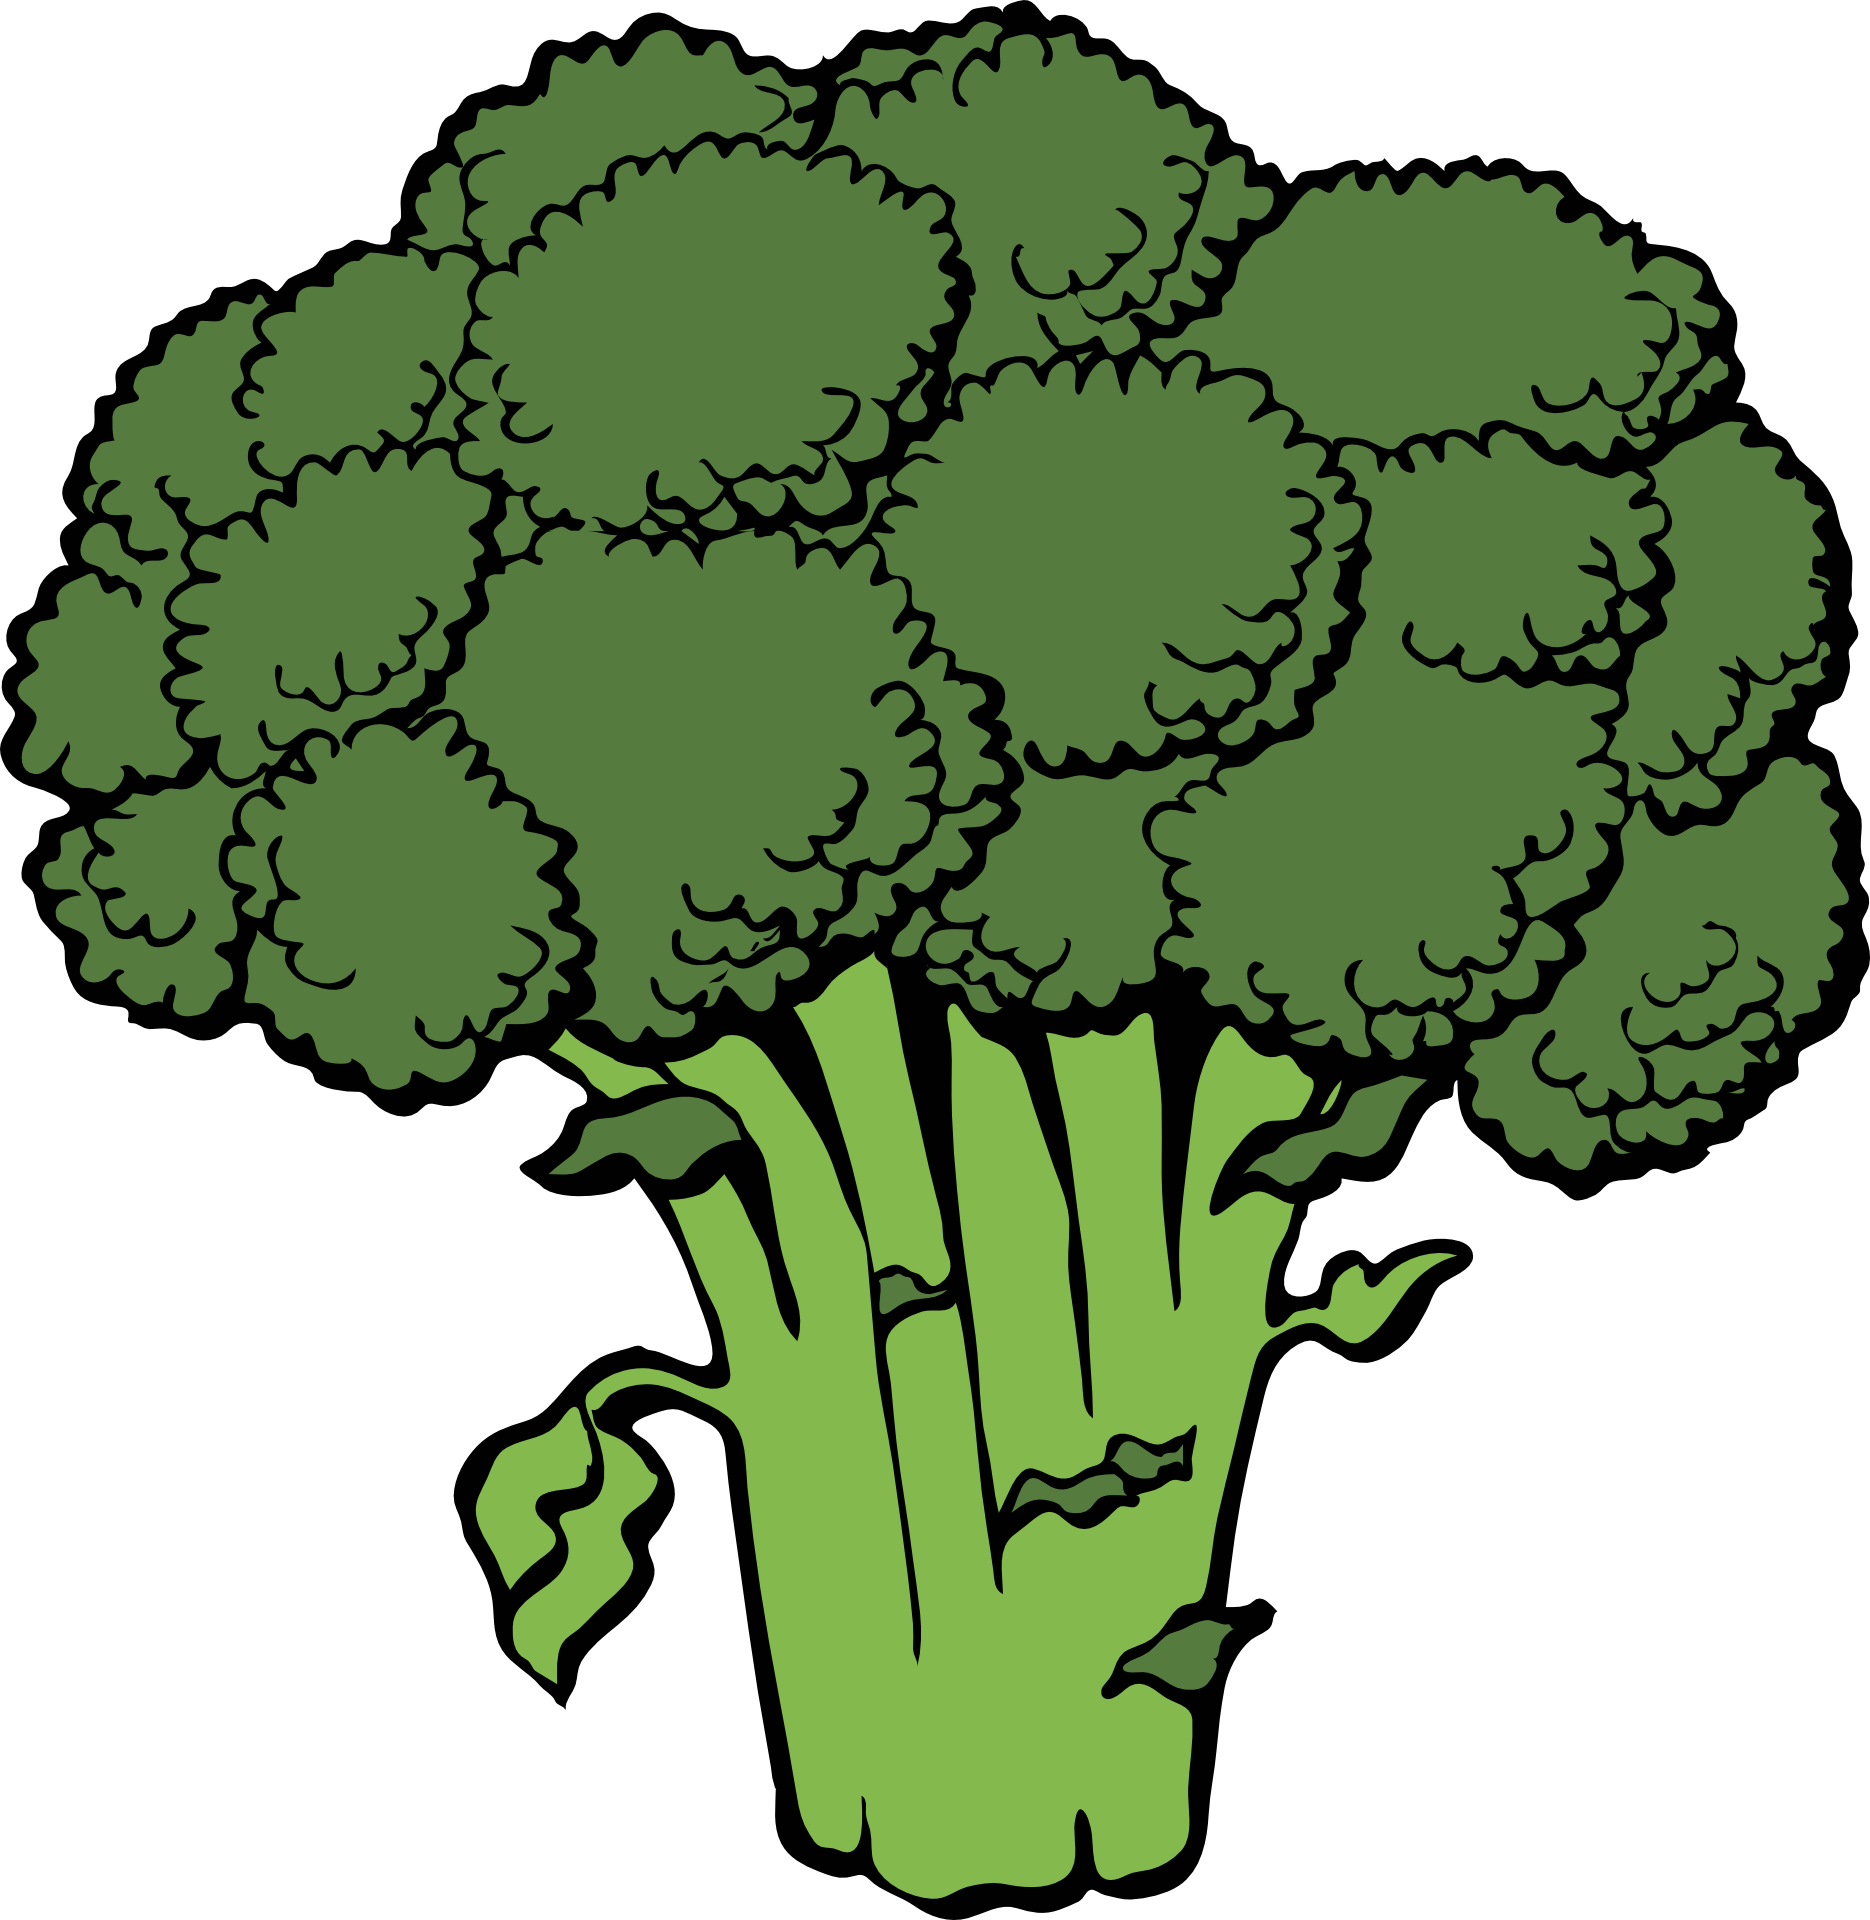 Clipart vegetables green vegetable. Broccoli clip art cauliflower